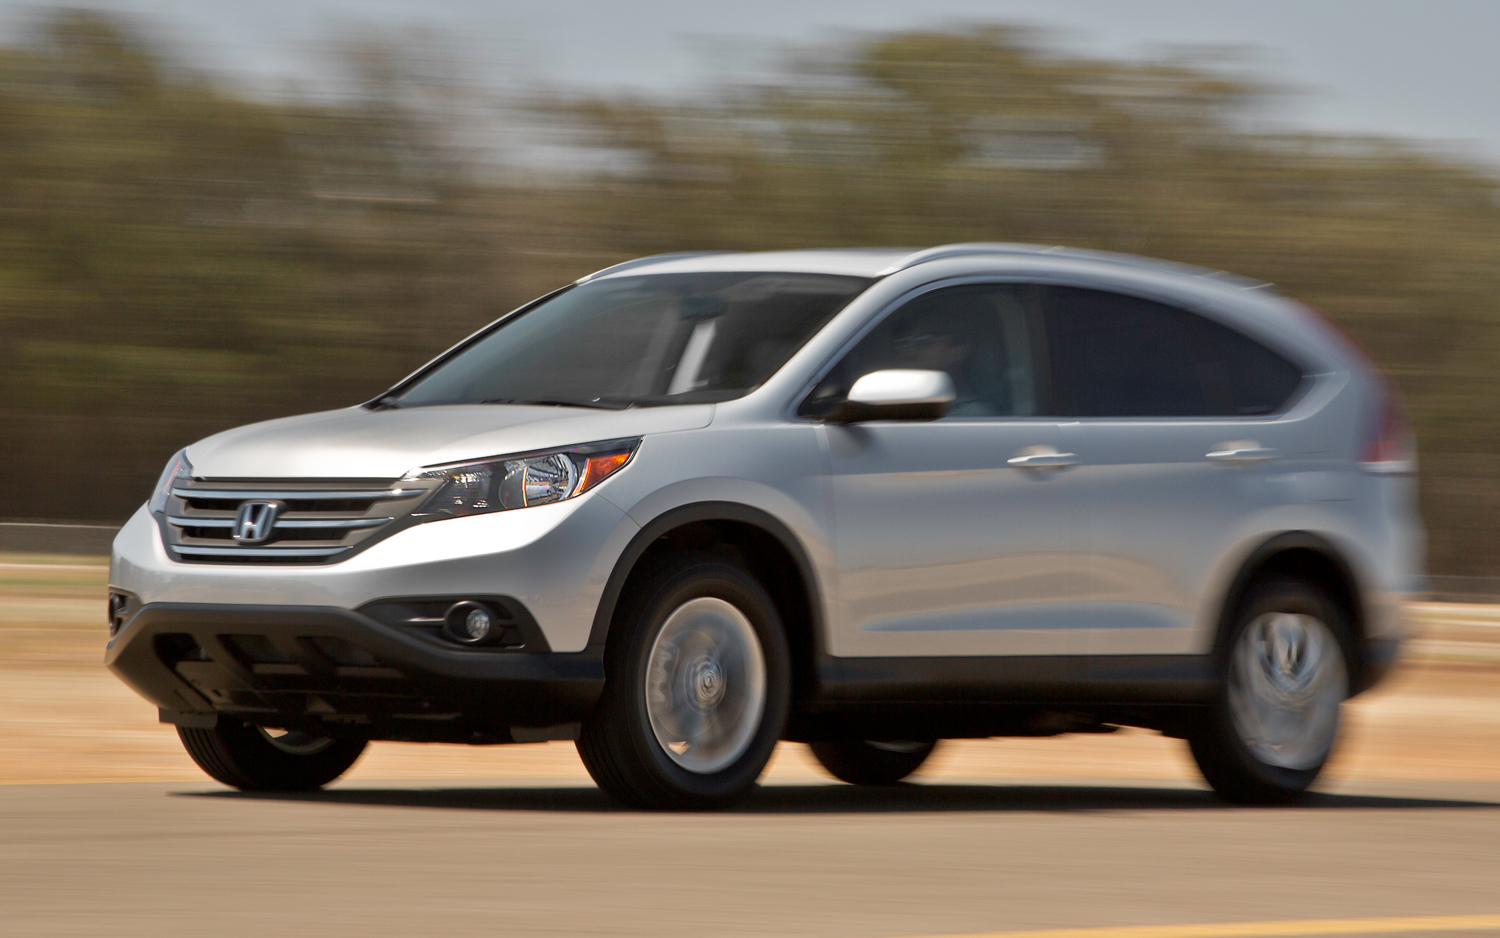 2013 Motor Trend Sport Utility Of The Year Contender Honda CR V